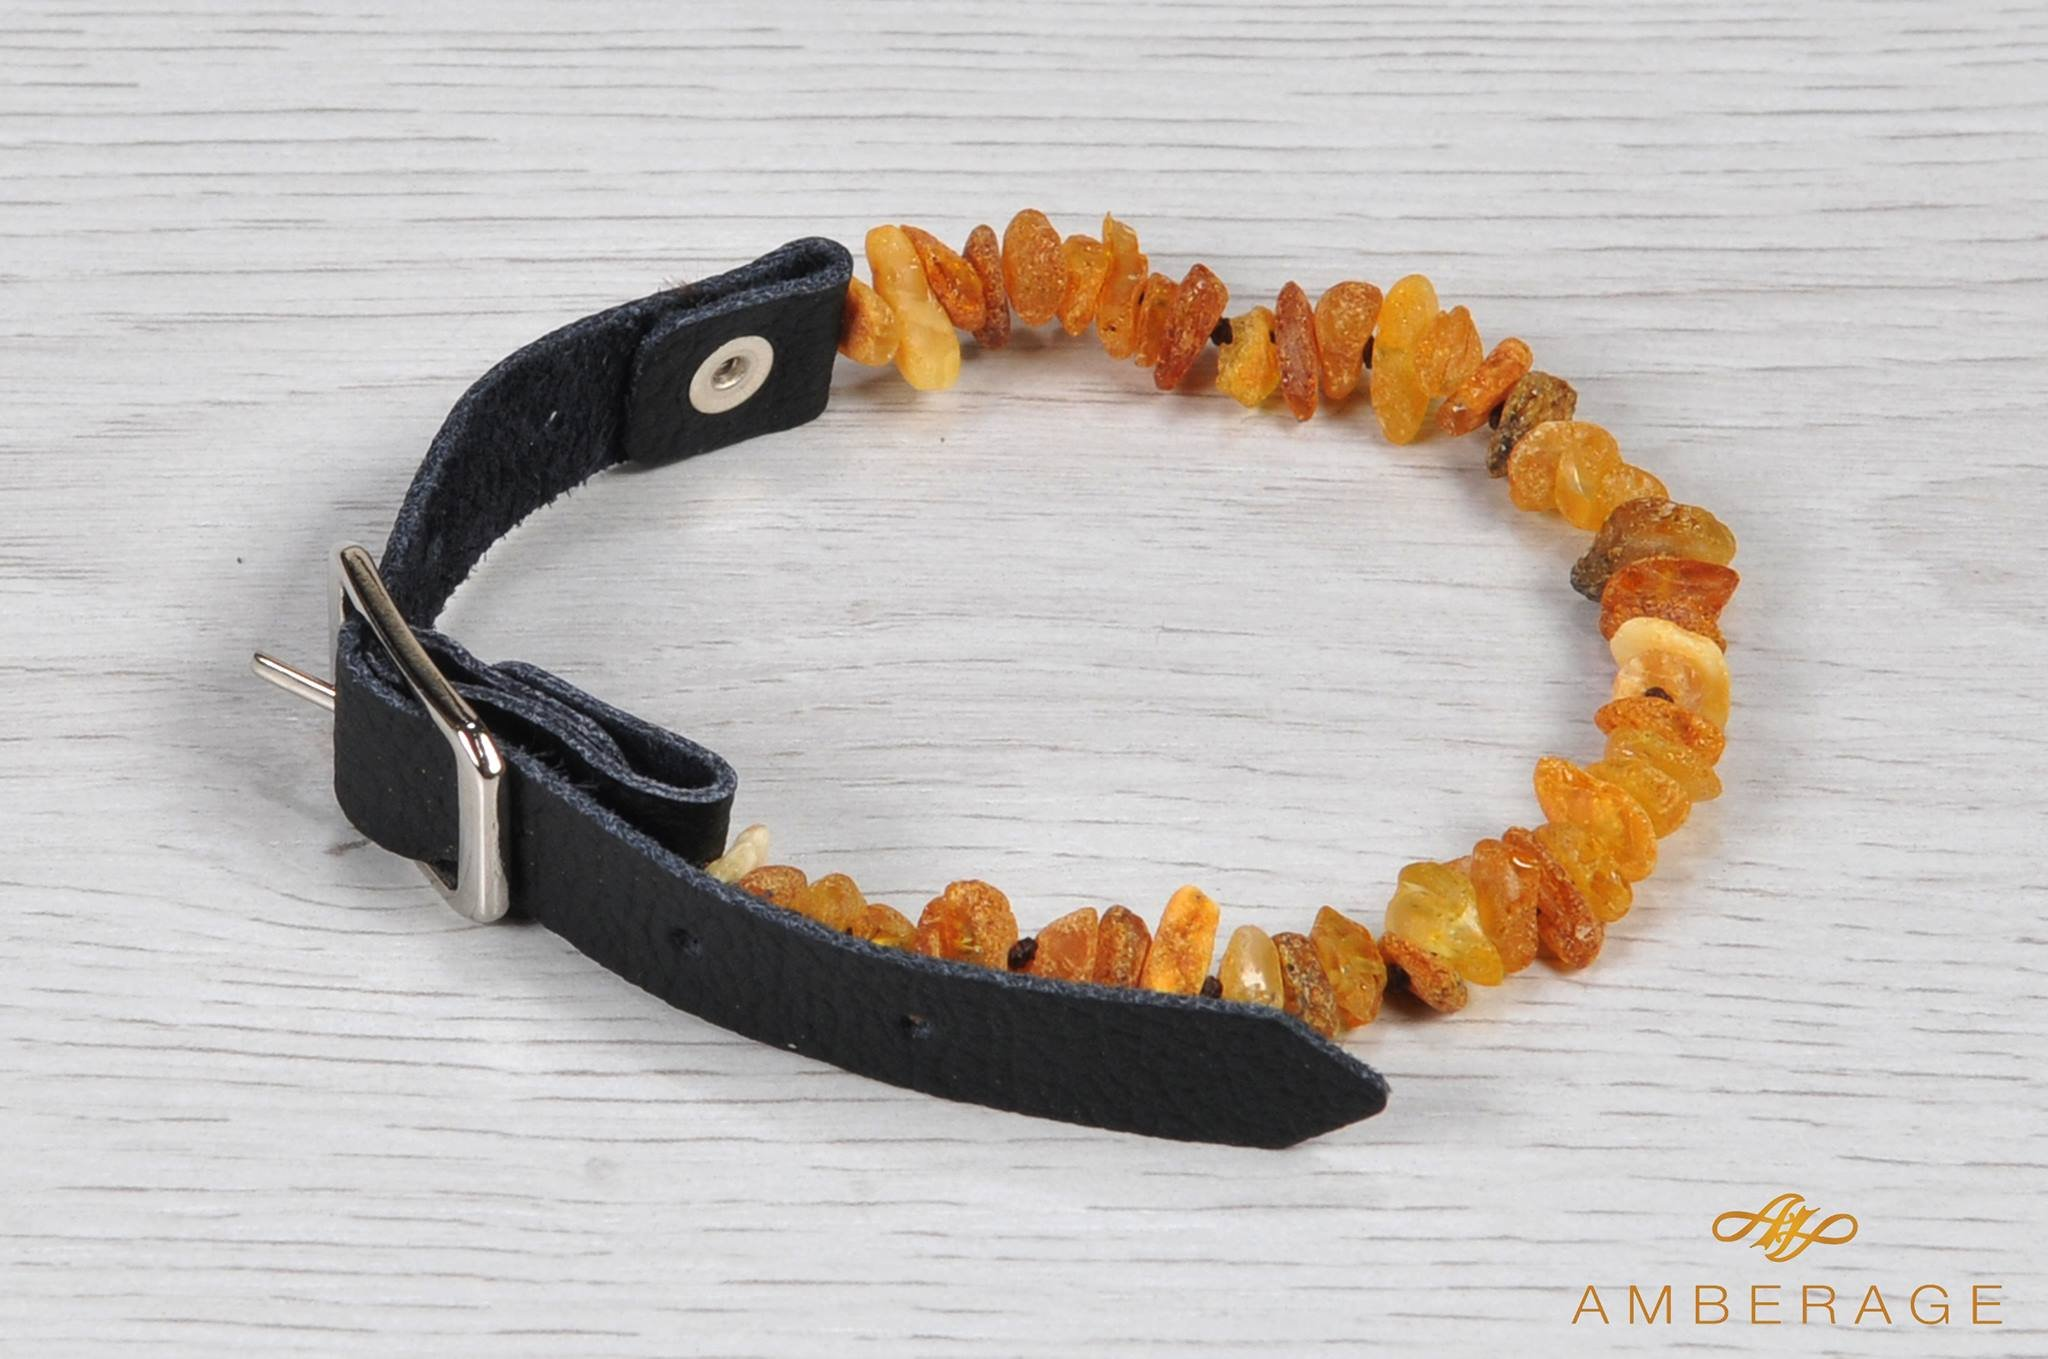 Amberage Natural Baltic Amber Necklaces - Jewelry for Dogs with Natural Leather Strap/Perfect Gift for Pet Lowers! Made by 6 sizes (XS 20-28cm)